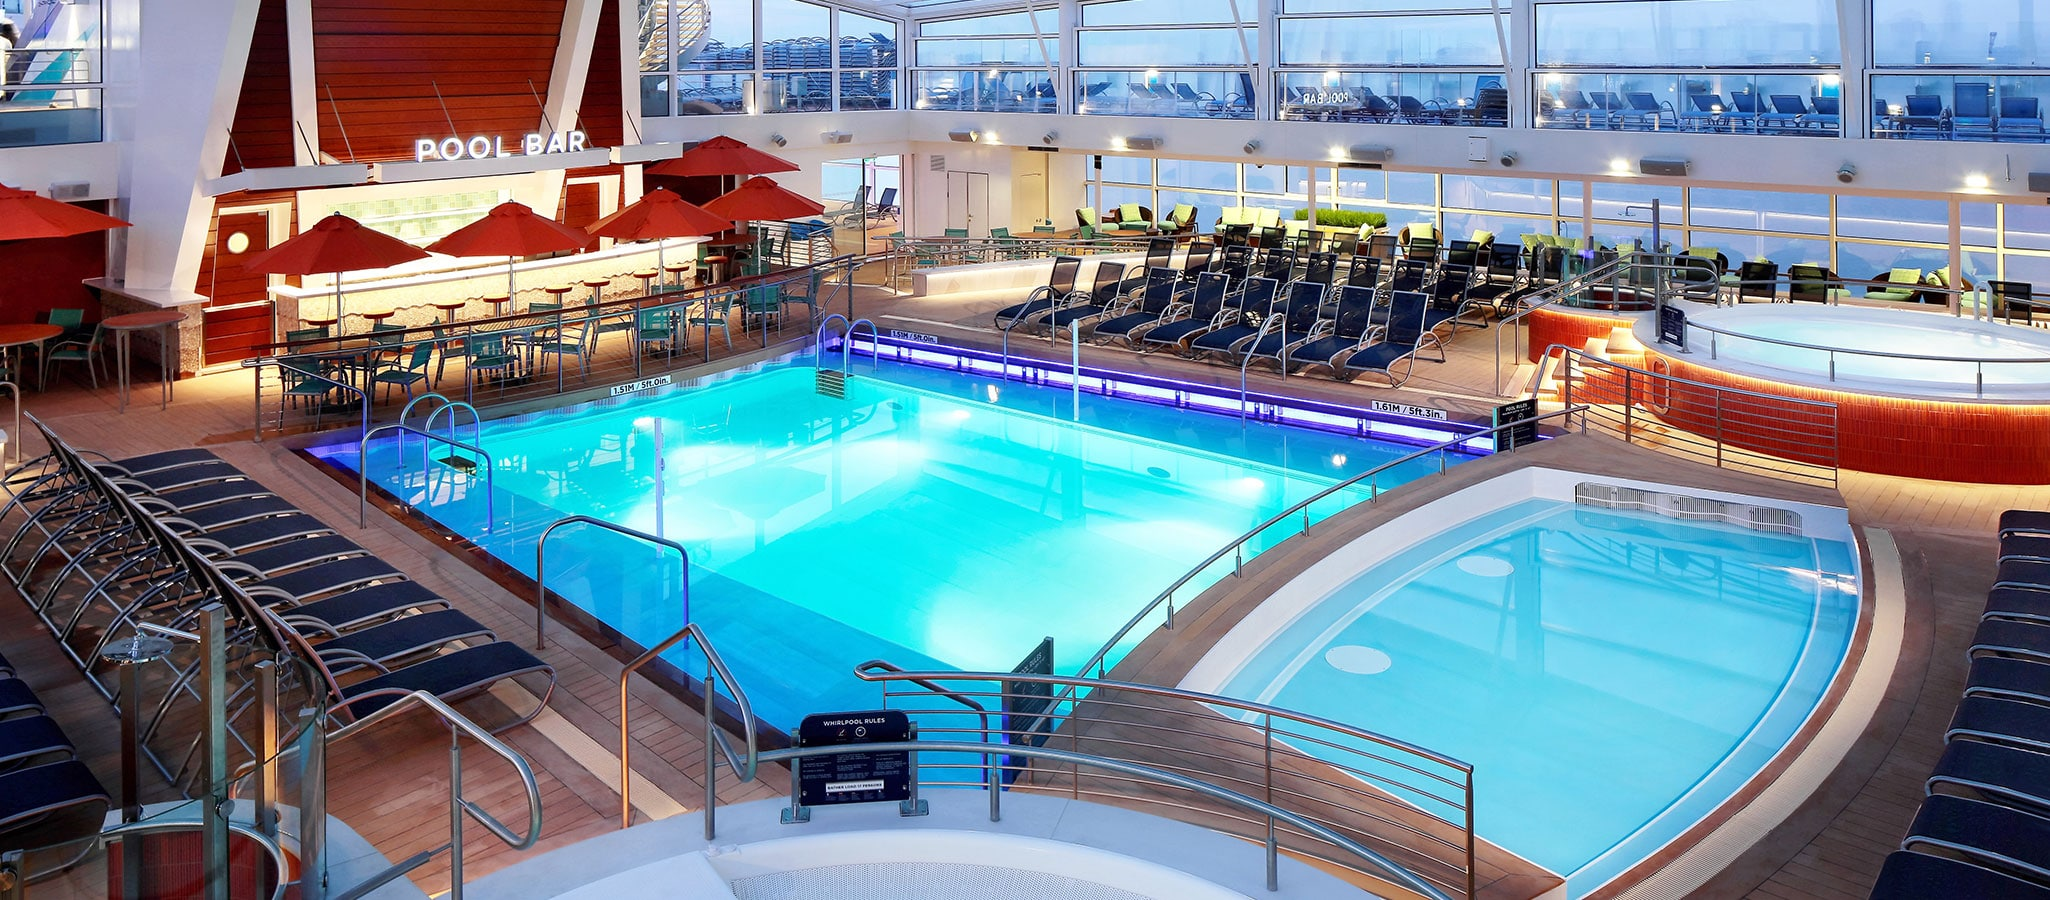 Cash Pool Teilnehmer Cruise Ships Up To 2700 Cabins For Maritime Events Ocean Event